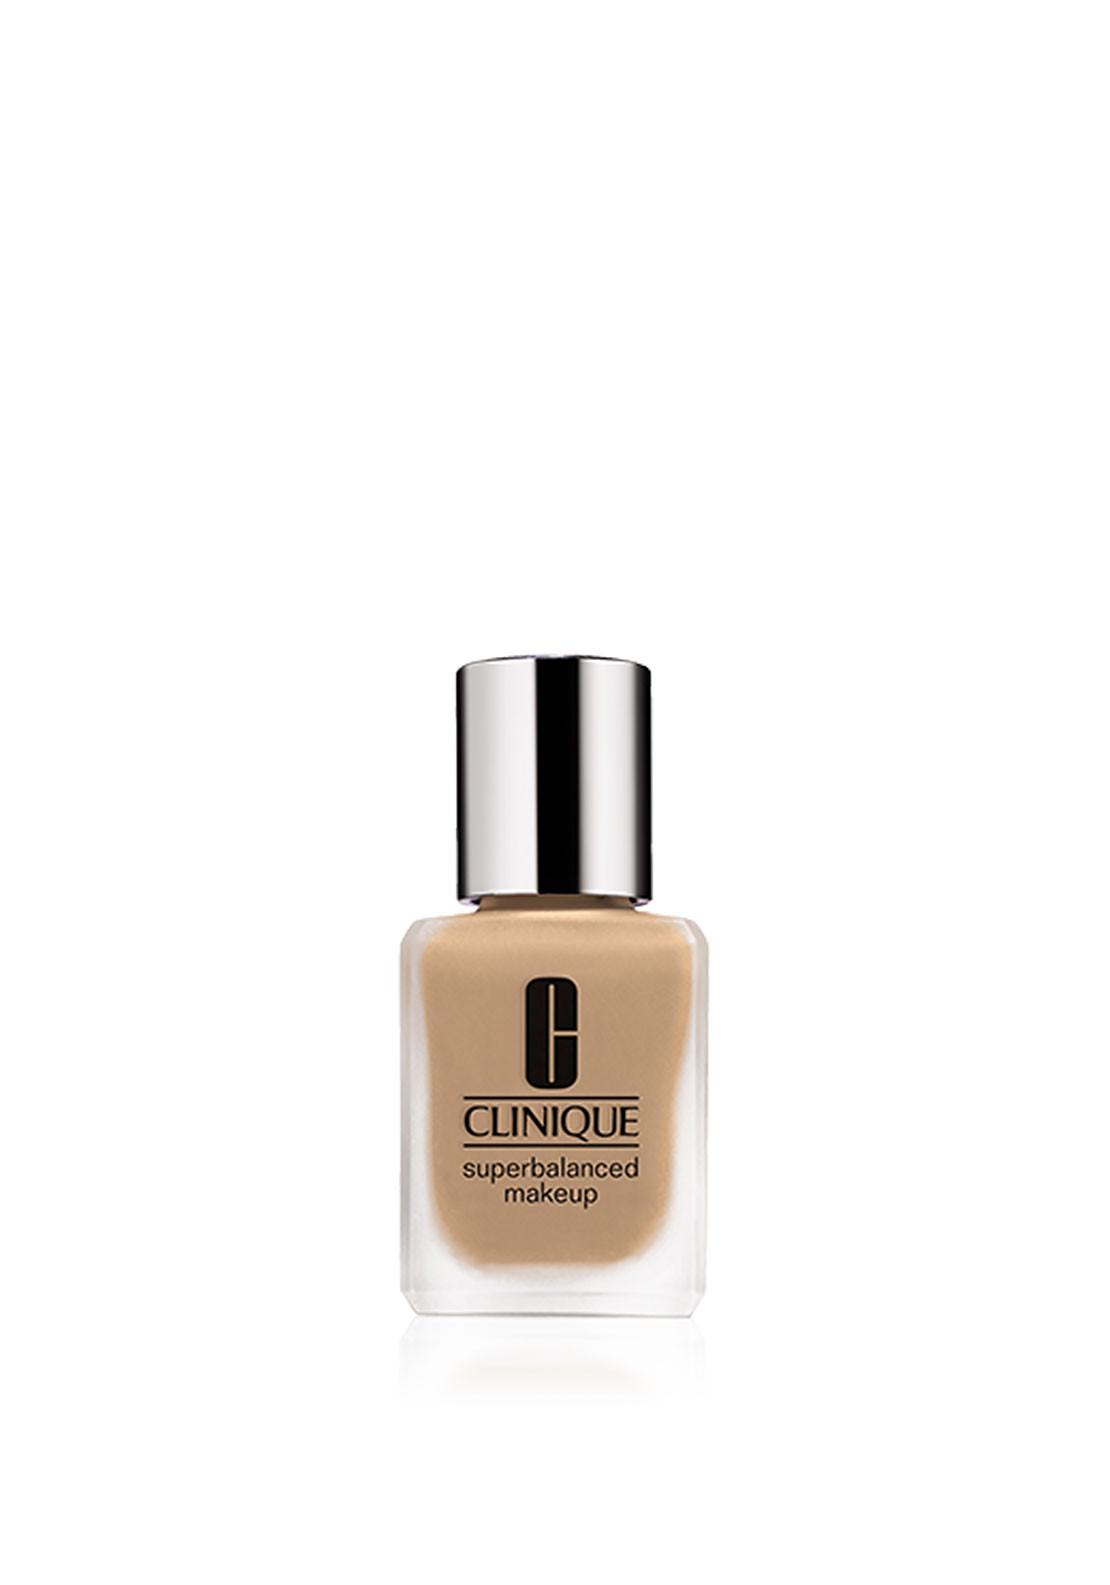 Clinique Superbalanced Make Up Foundation, Nude Beige